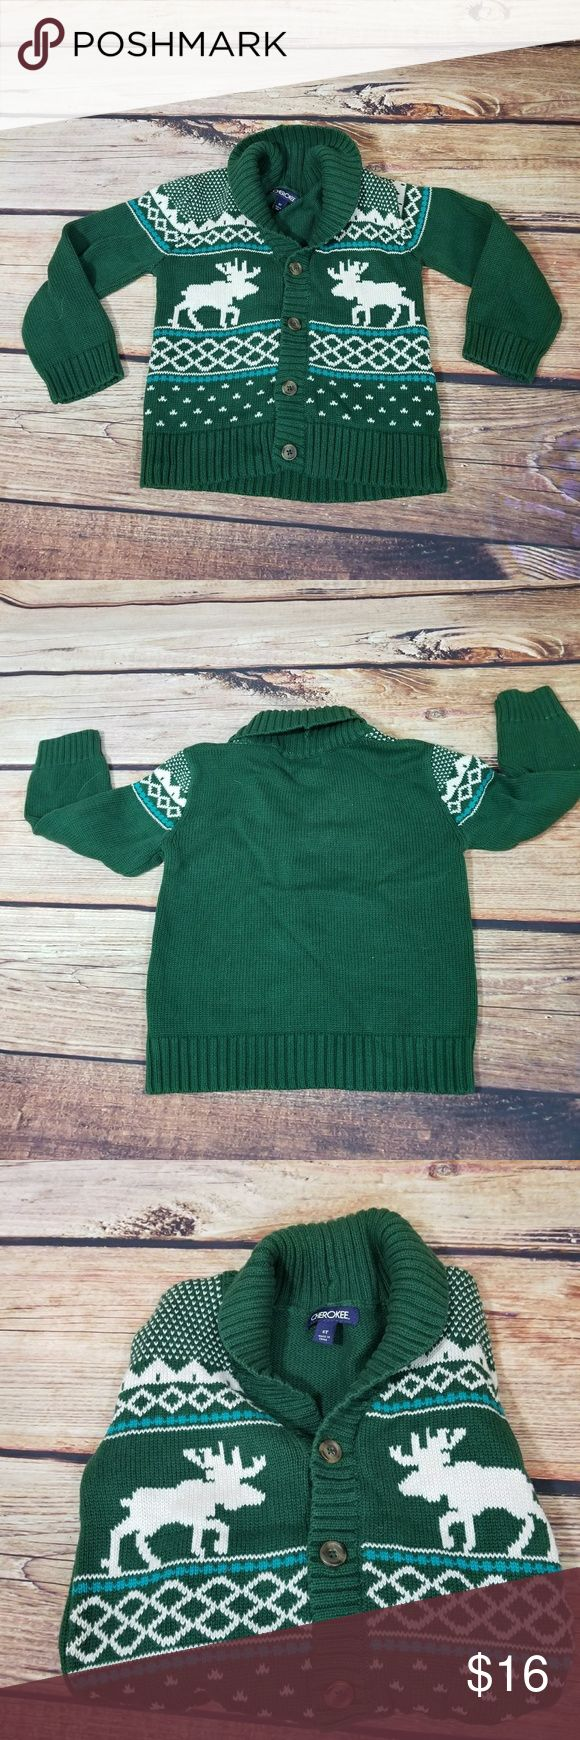 Cherokee Brand Moose design Green Cardigan Size 5T Adorable Moose patterned Cardigan 100% Cotton. Size 5T great condition , no signs of wear. Cherokee Shirts & Tops Sweaters